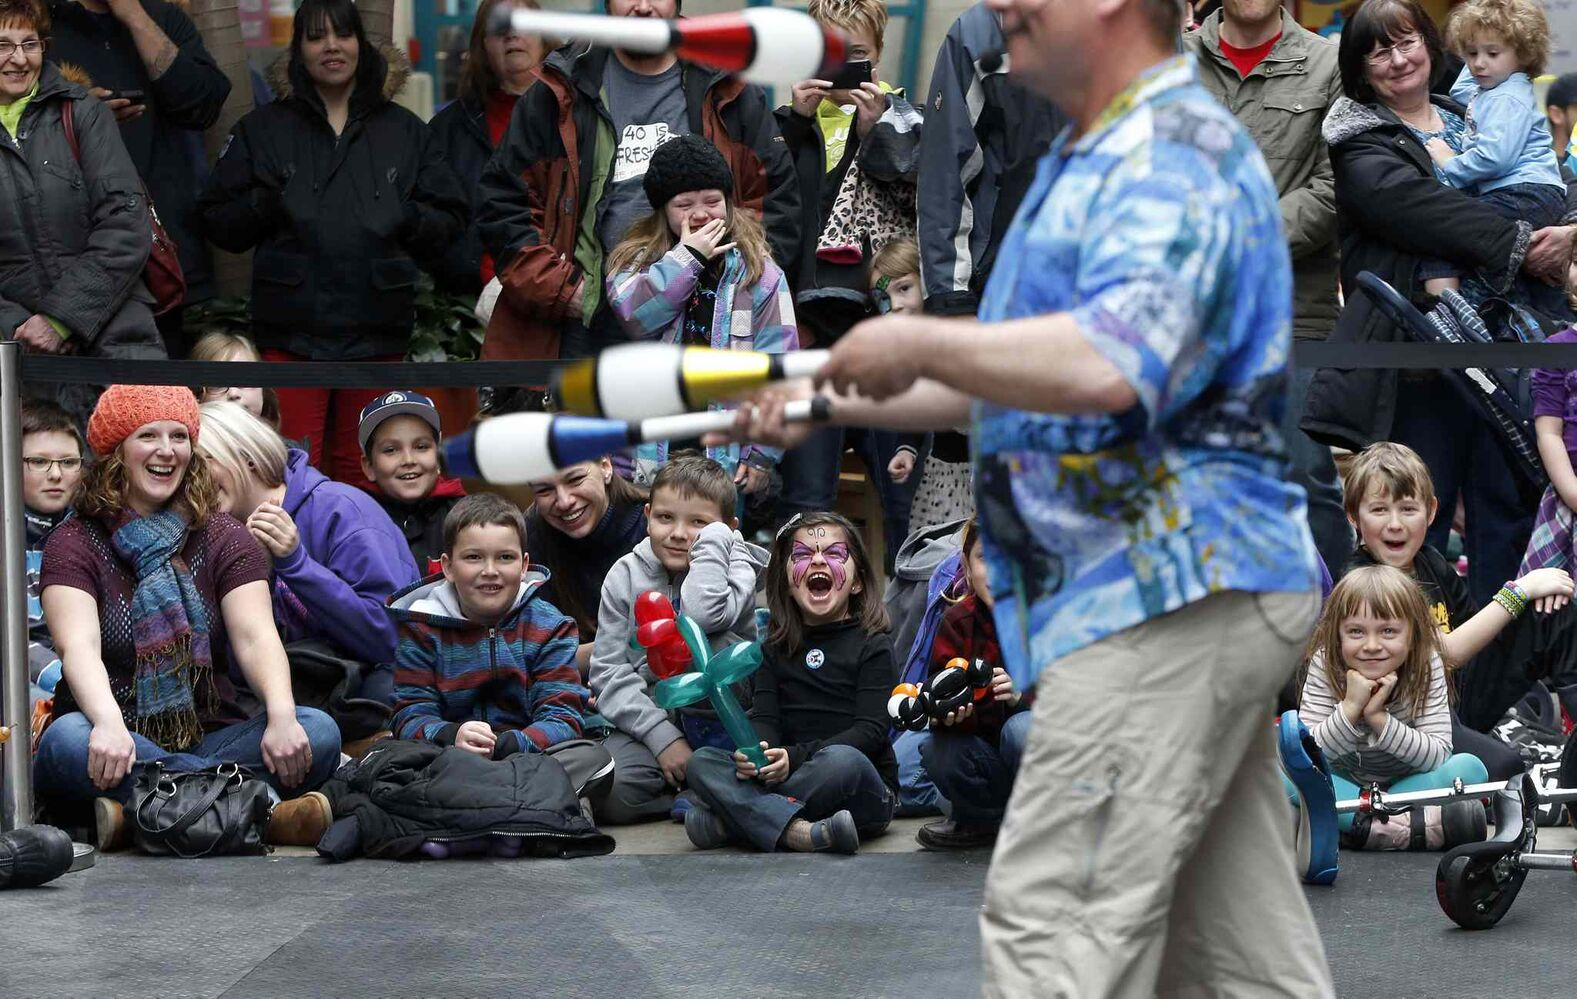 Kids of all ages enjoy a performance Monday by North Vancouver juggler Mike Battie at the Manitoba Childrens Festival's Festival of Fools at the Forks Market. The festival offers shows every day this week between 11 a.m. to 3 p.m.,  featuring face painting, jugglers, clowns, acrobats, swinging trapeze and craft workshops. (KEN GIGLIOTTI / WINNIPEG FREE PRESS)